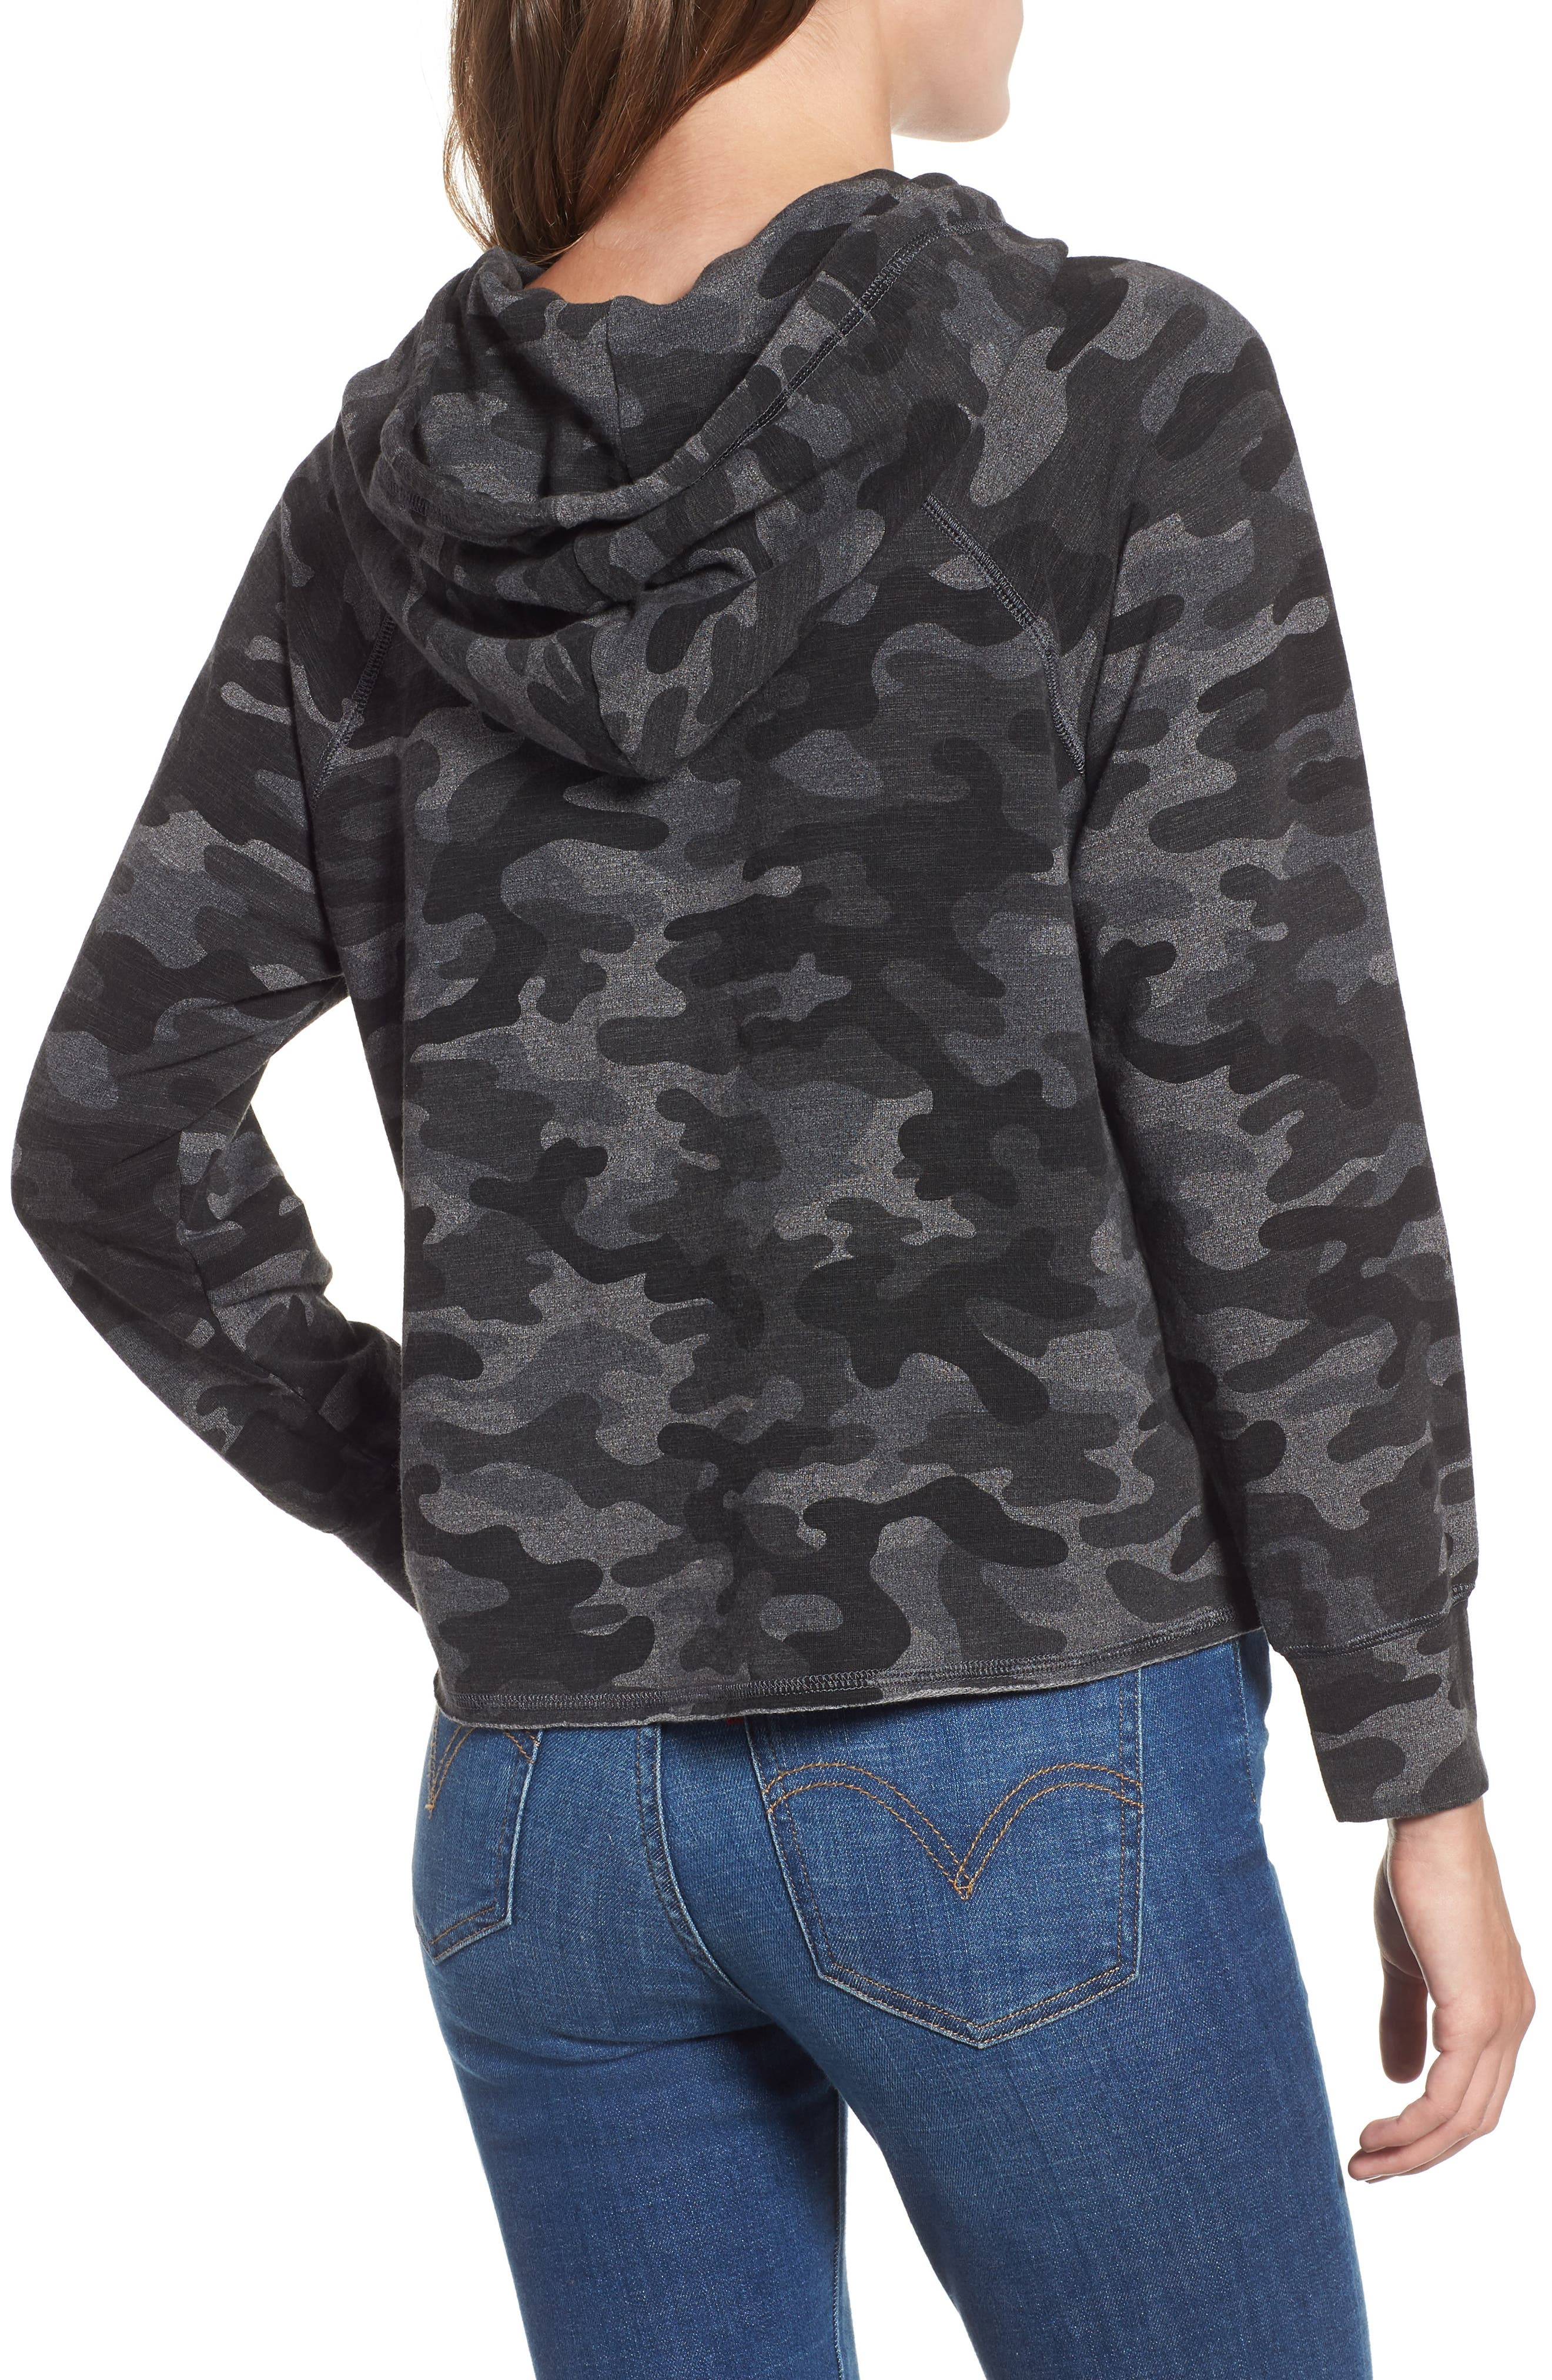 Camo Crop Hoodie,                             Alternate thumbnail 2, color,                             CHARCOAL